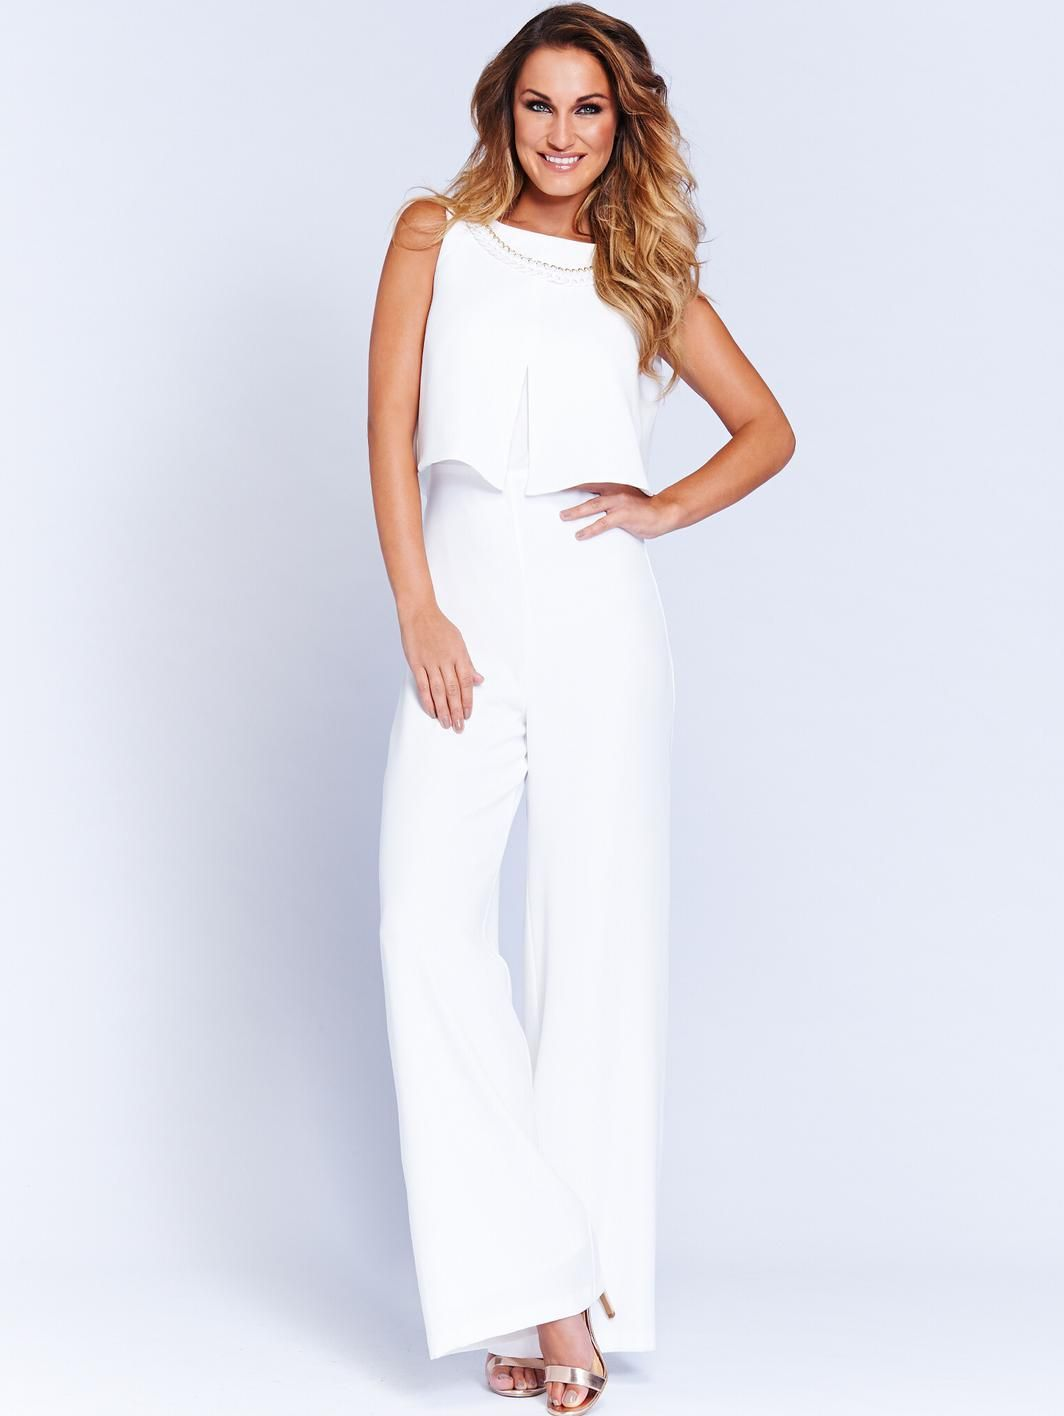 White sam faiers jumpsuit simple conservative and - Jumpsuit hochzeit ...